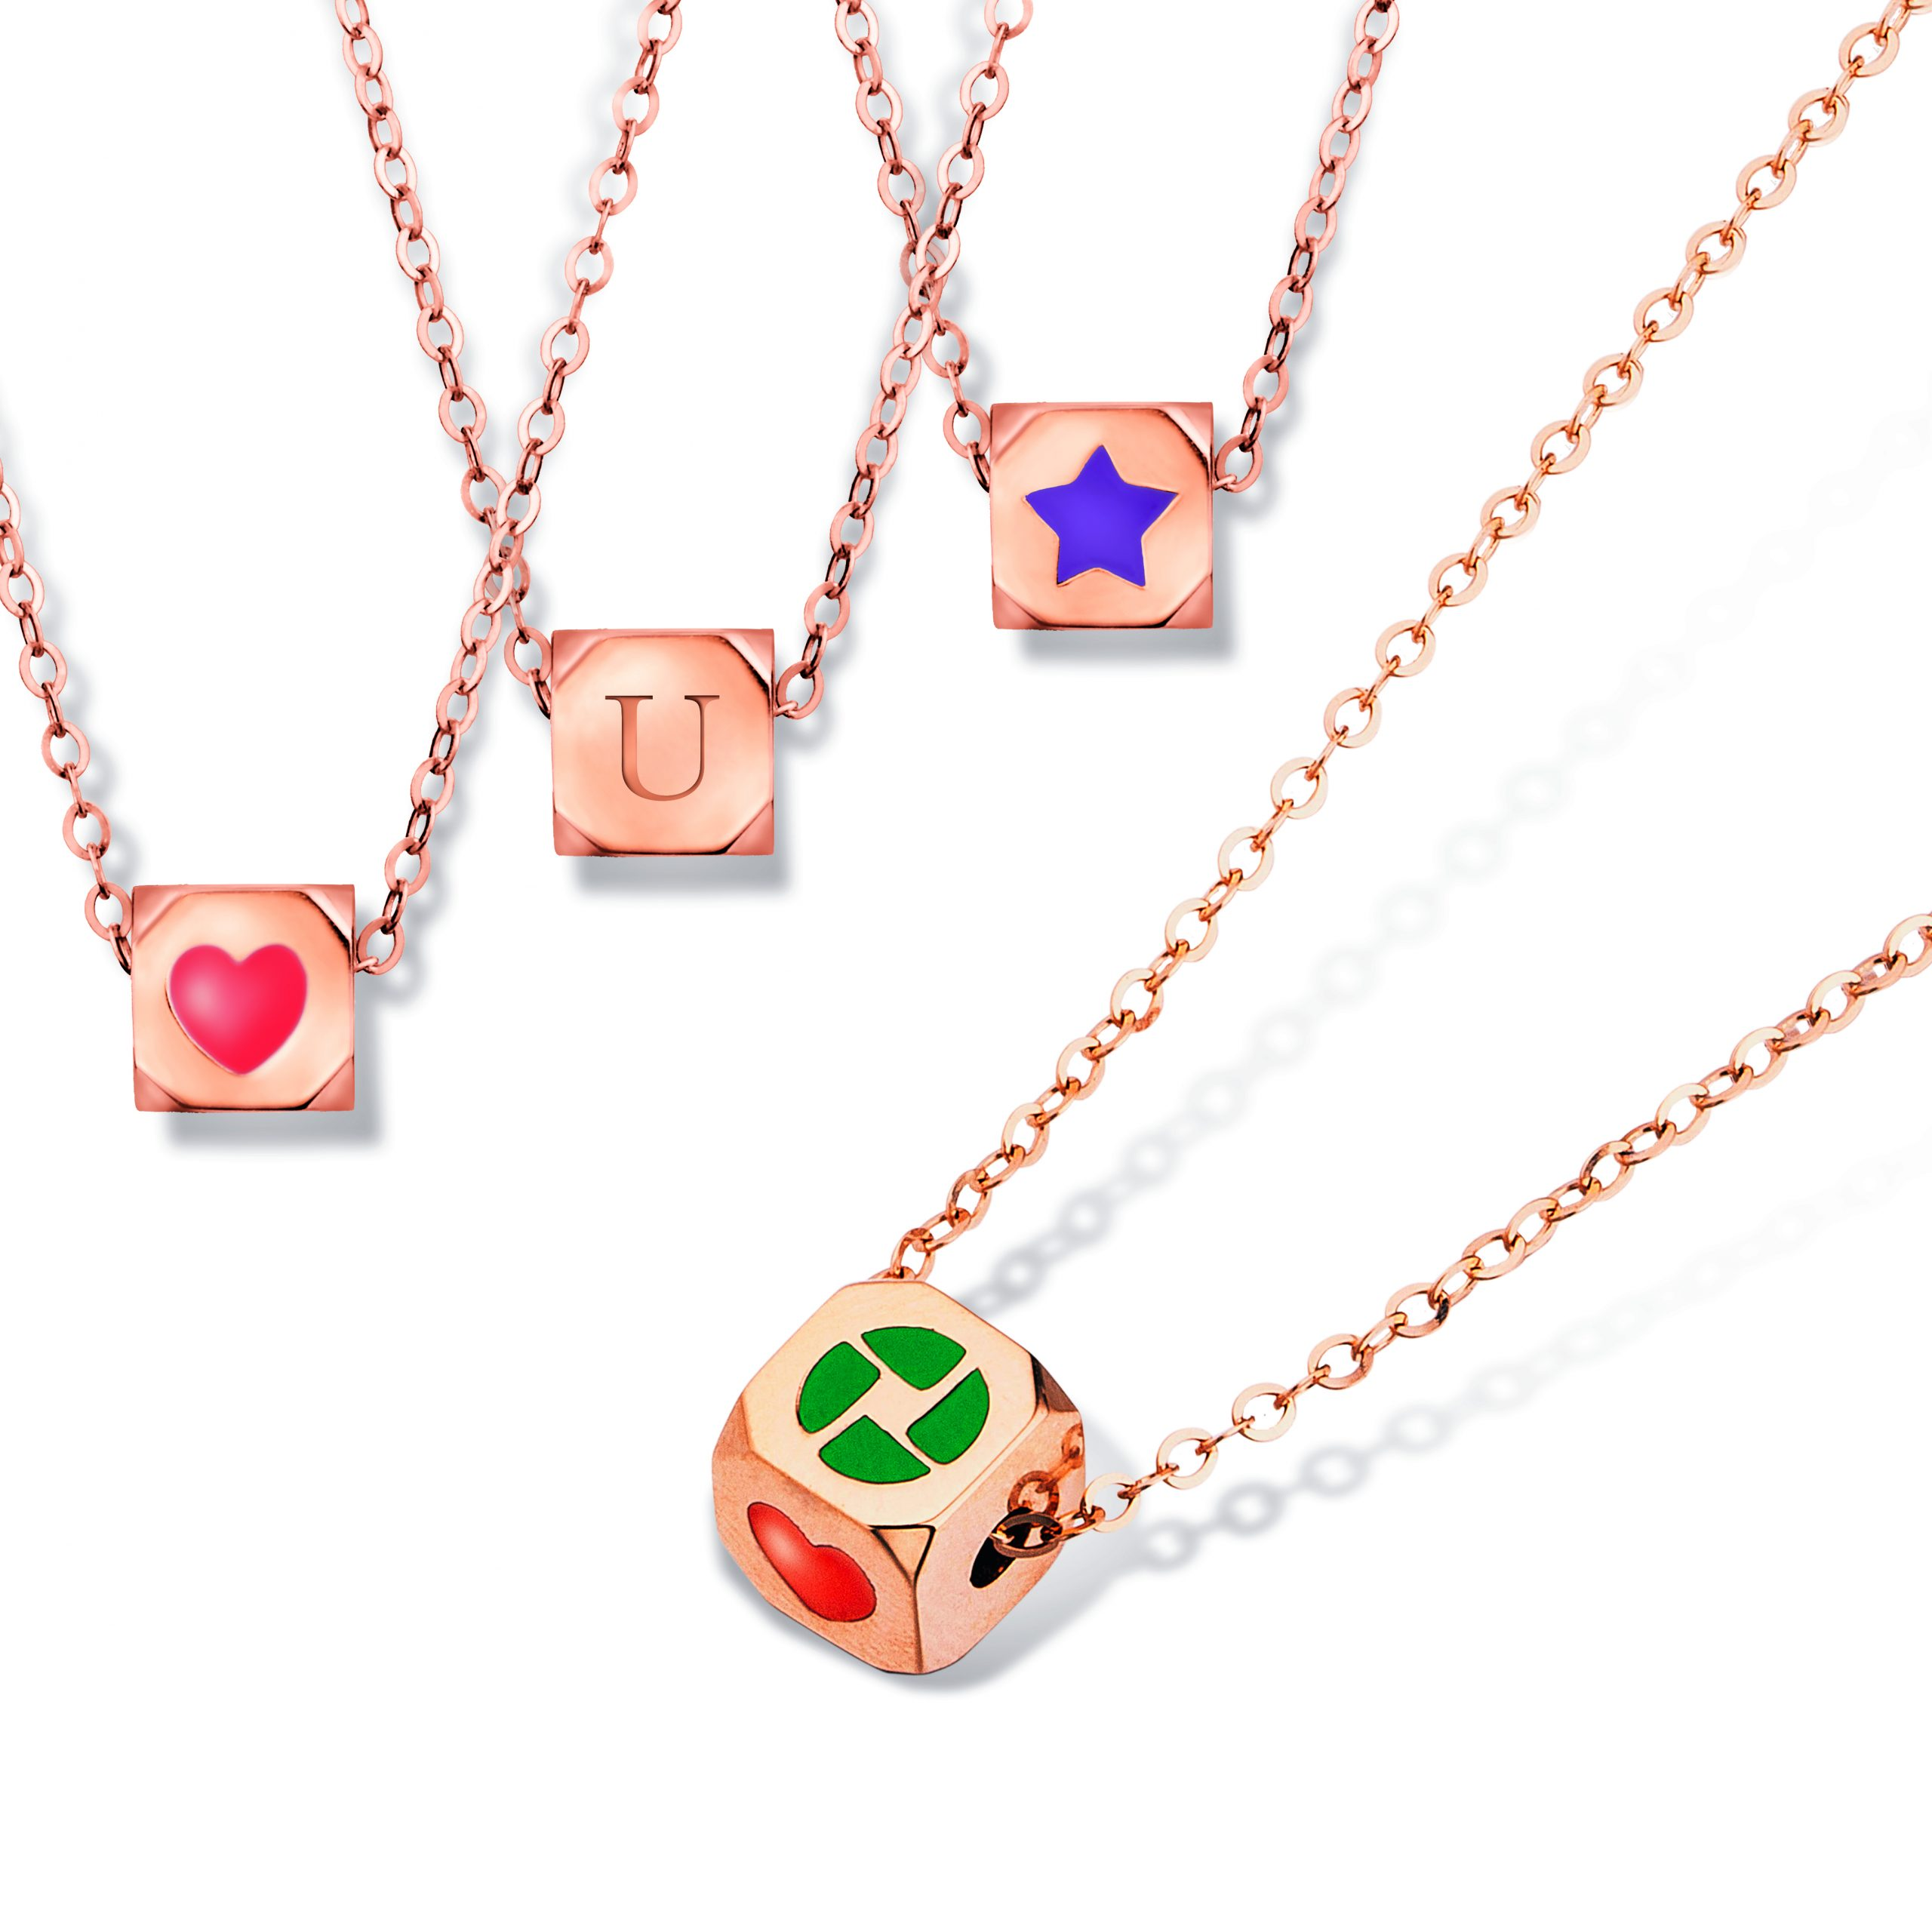 Hot items Dainty Magic Cube 18K Gold Necklace